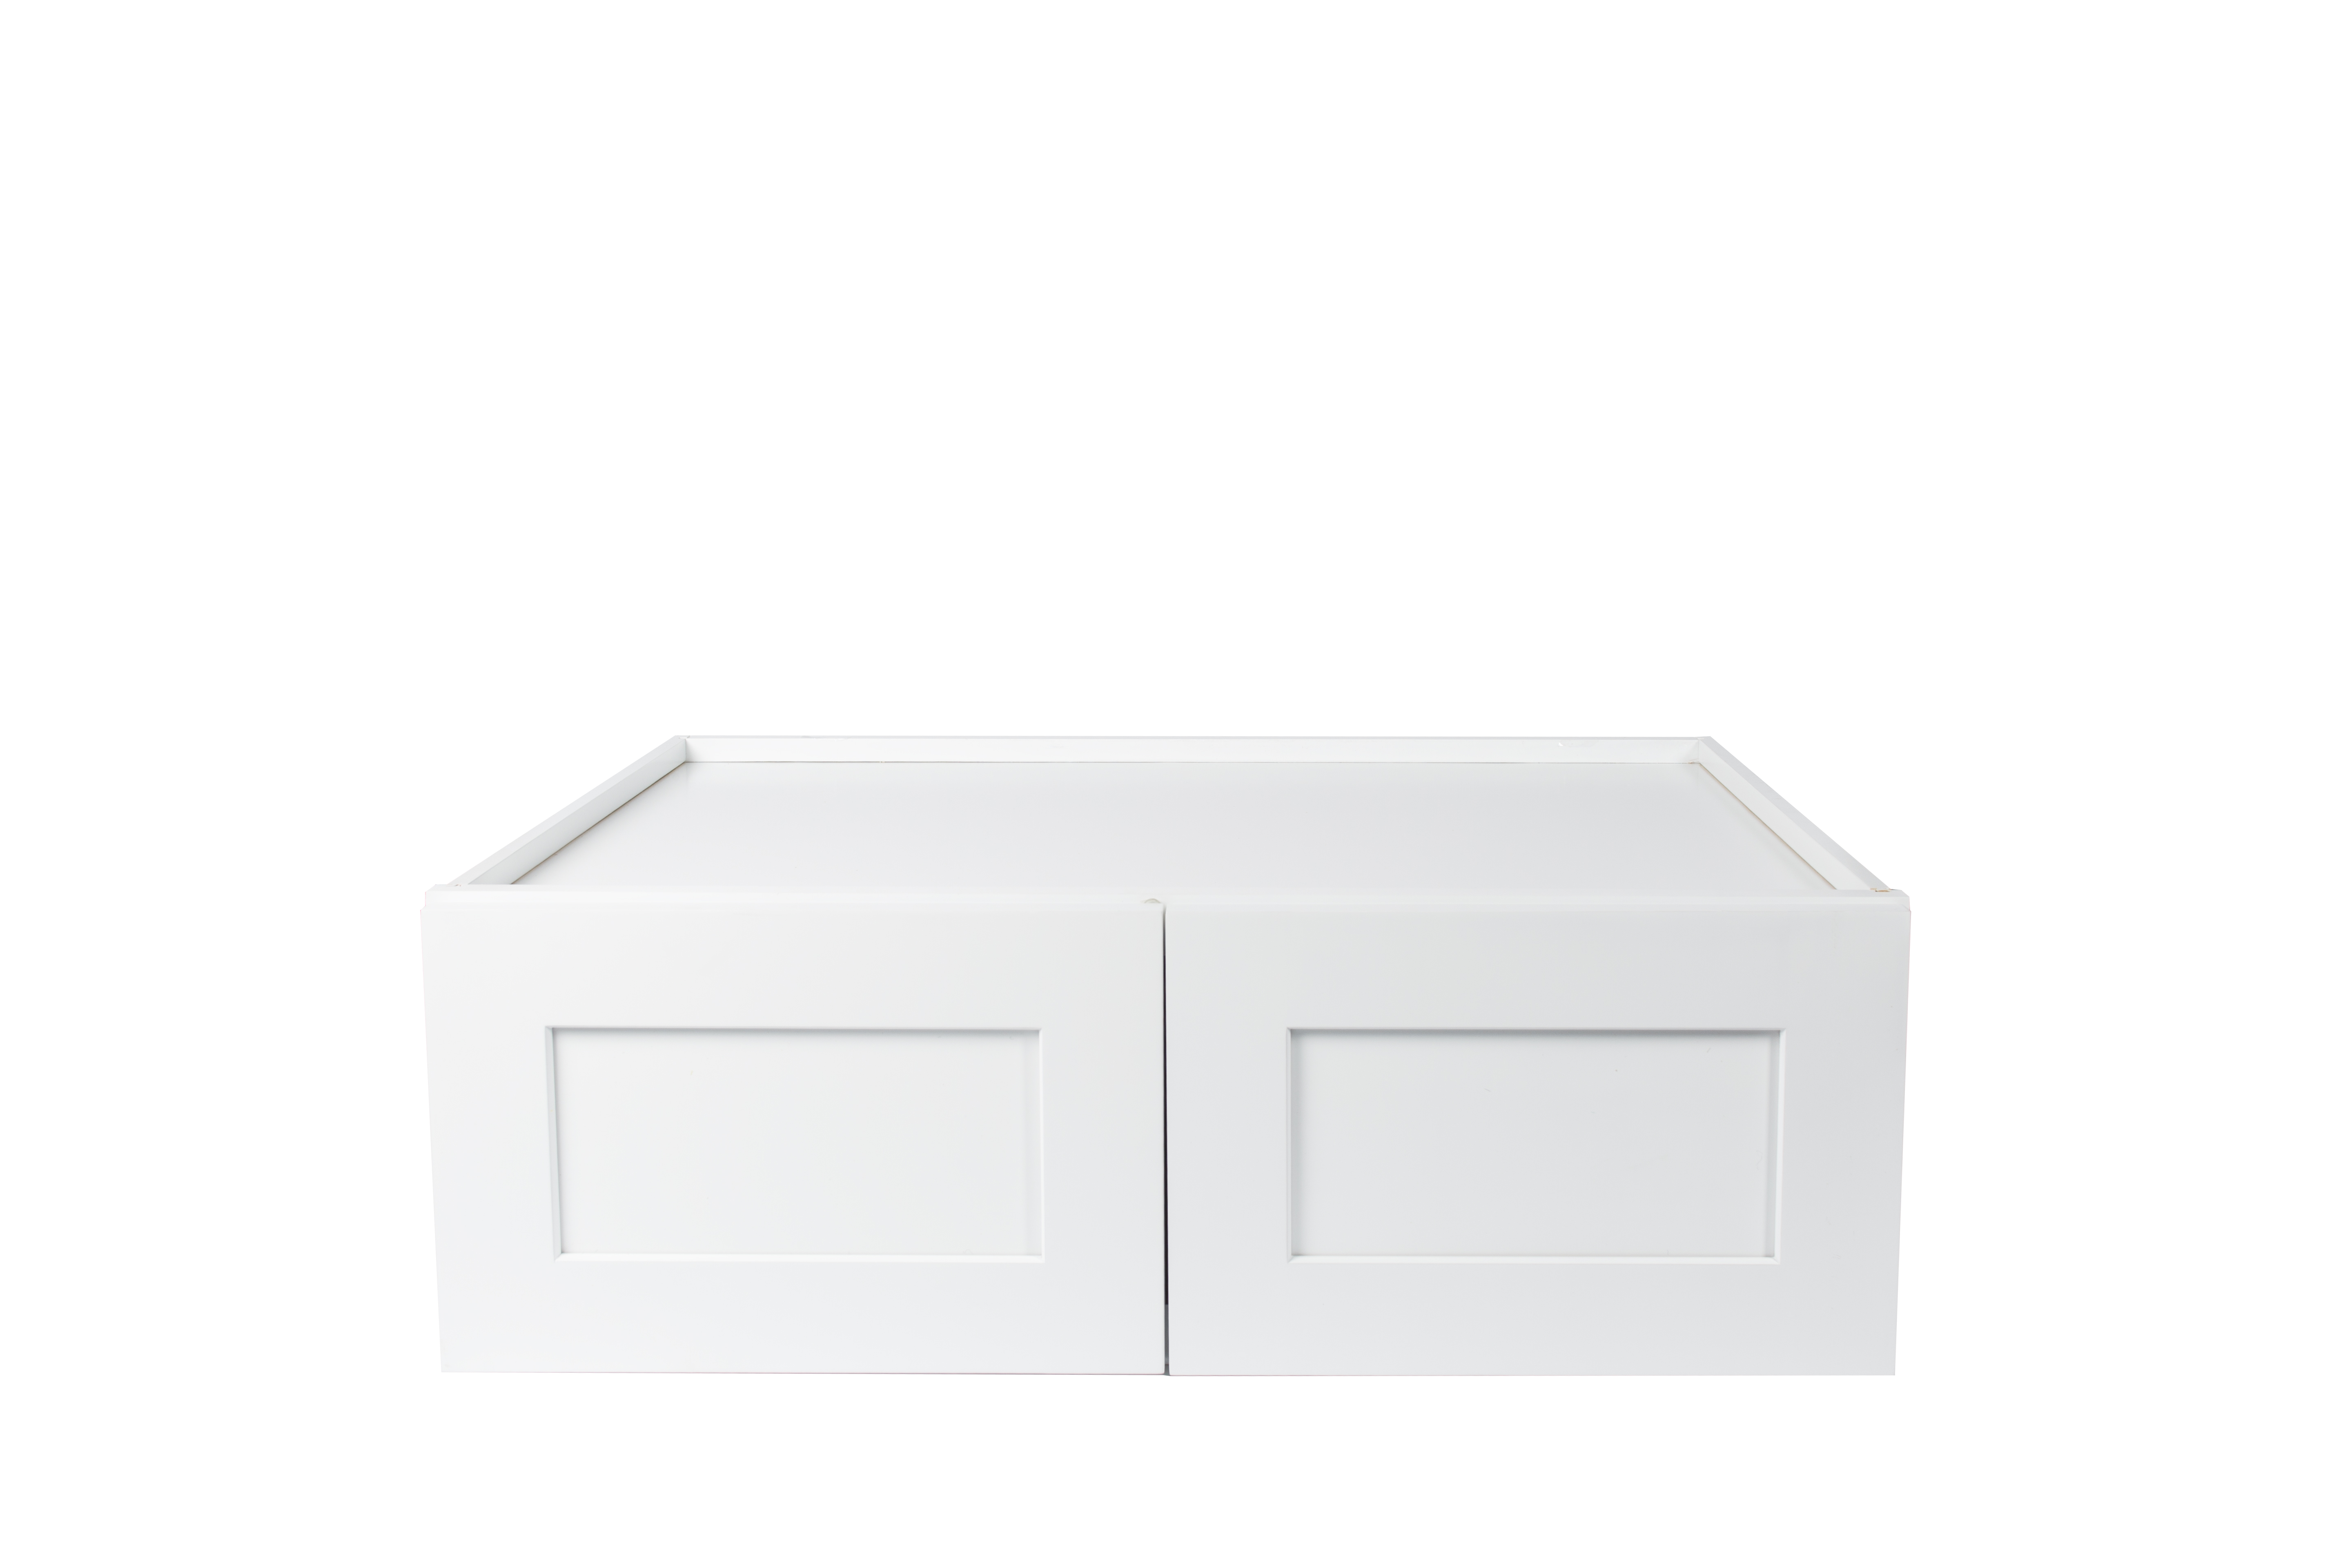 Ready to Assemble 30x15x12 in. Shaker High Double Door Wall Cabinet in White